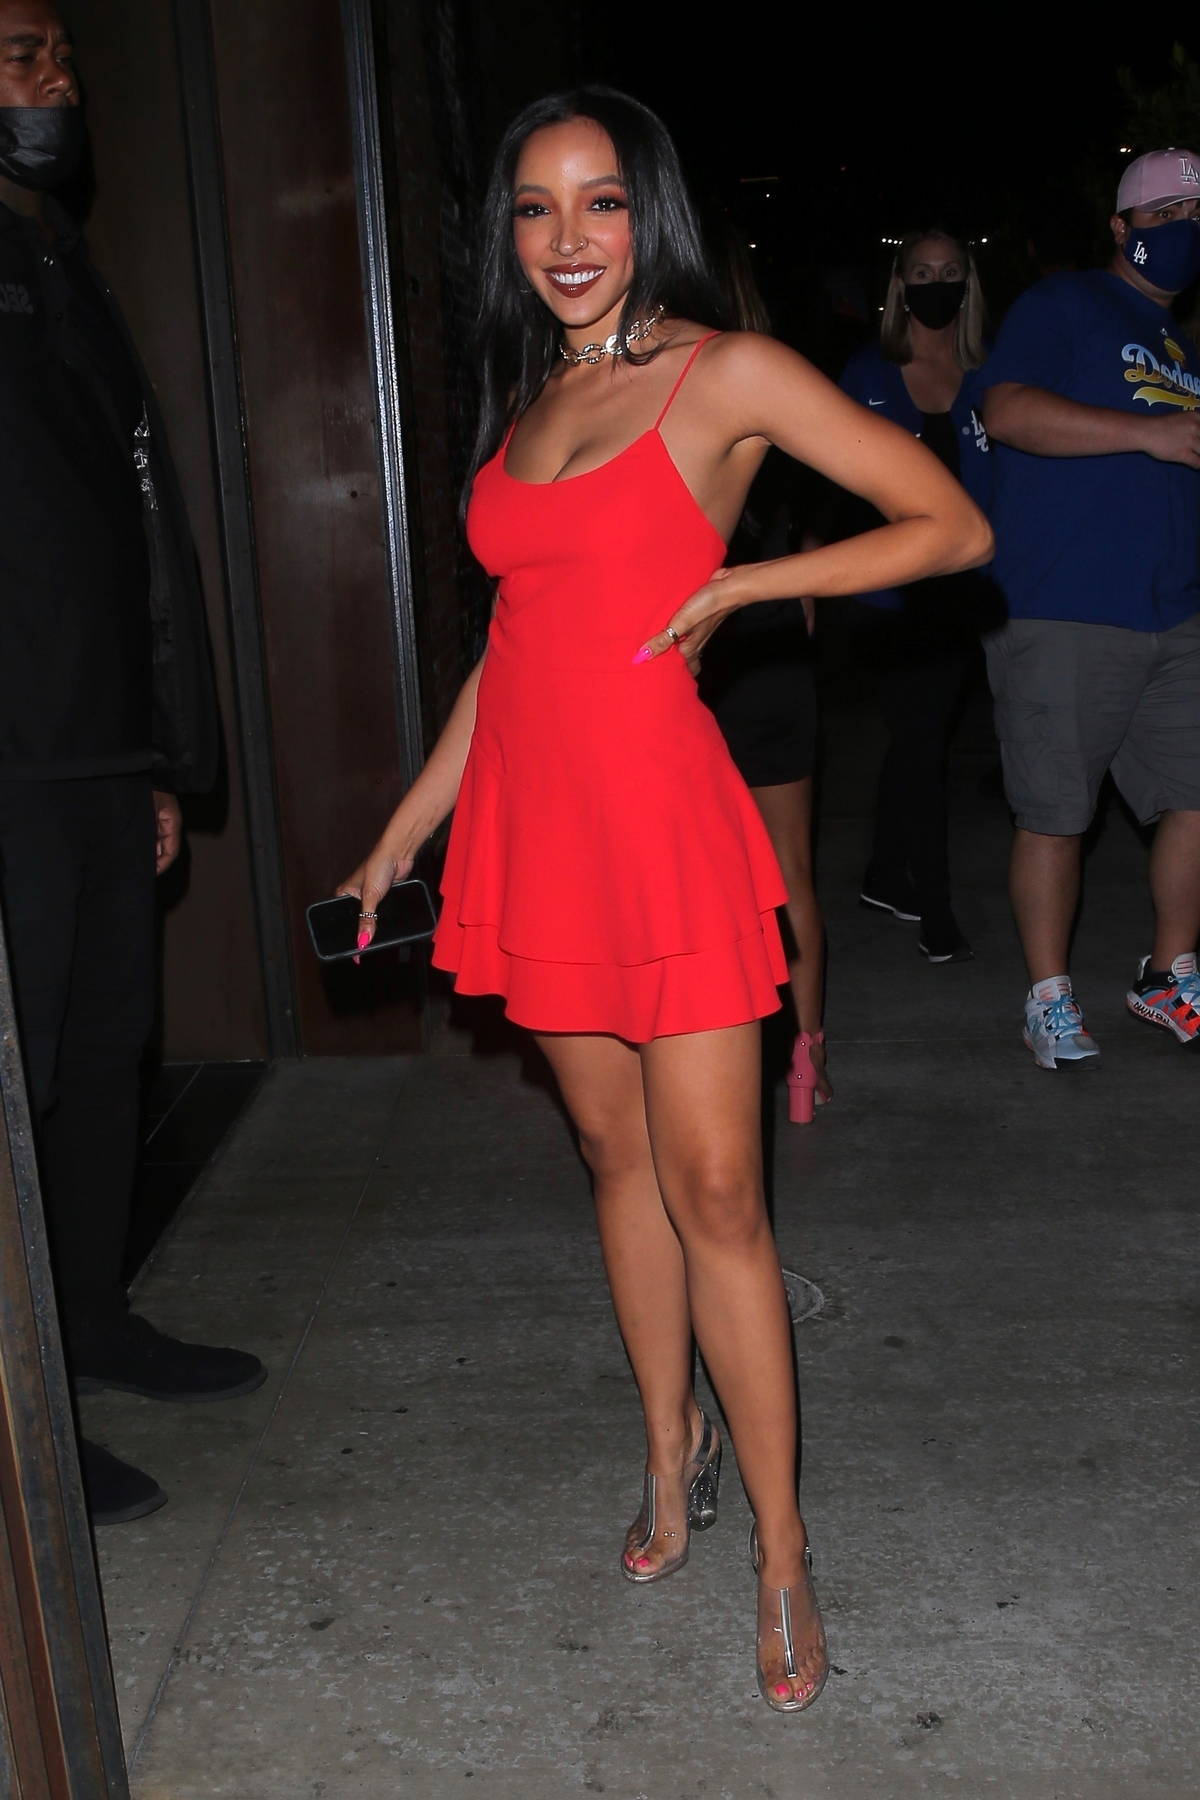 Tinashe looks great in a short red dress as she arrives for dinner at TAO in Los Angeles